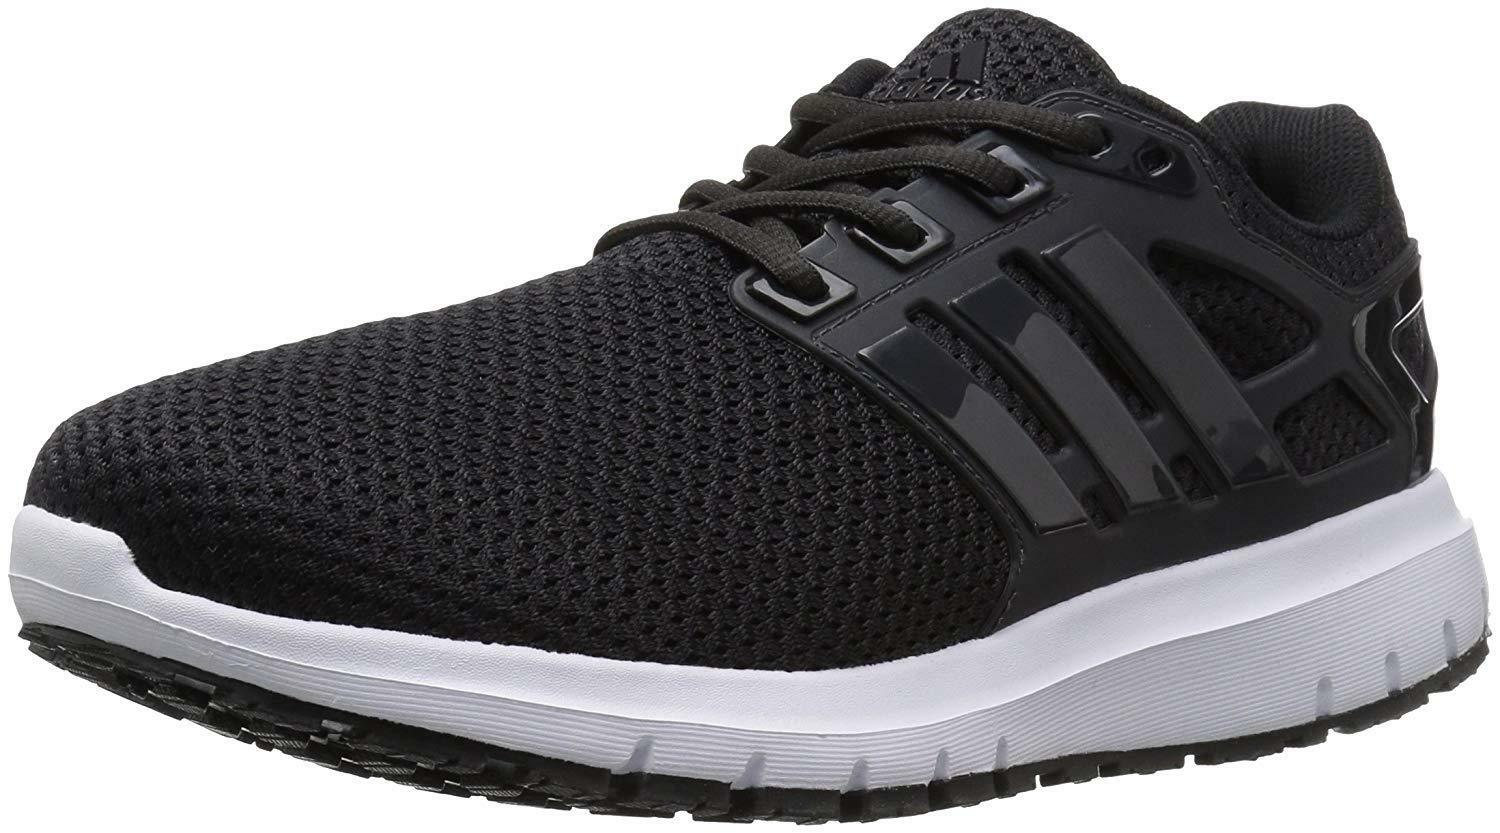 Adidas Men's Energy Cloud Wide m Running shoes